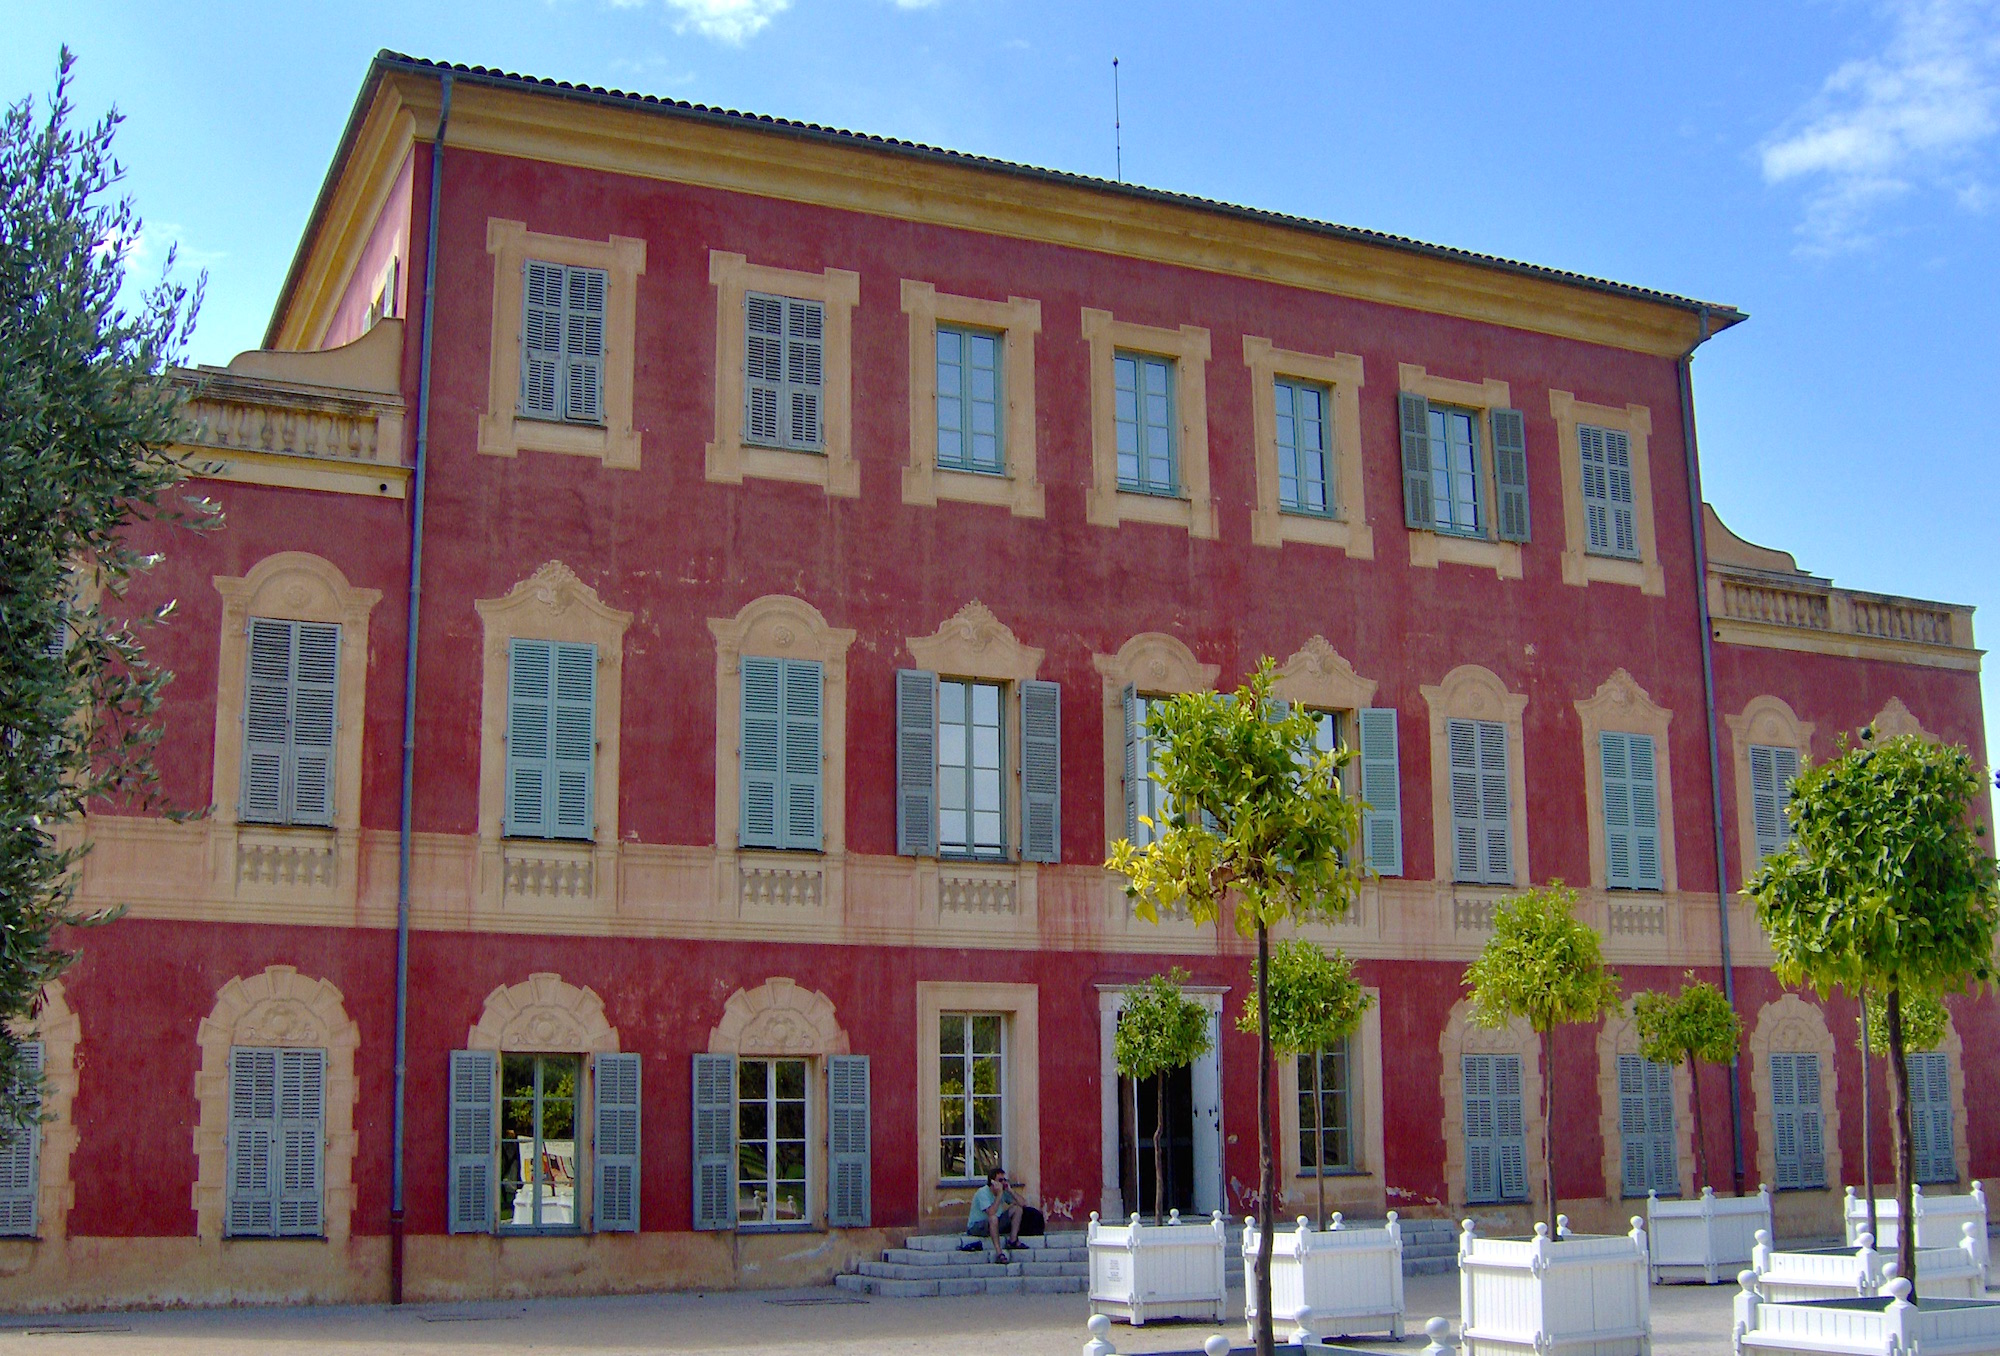 The Matisse Museum in Nice